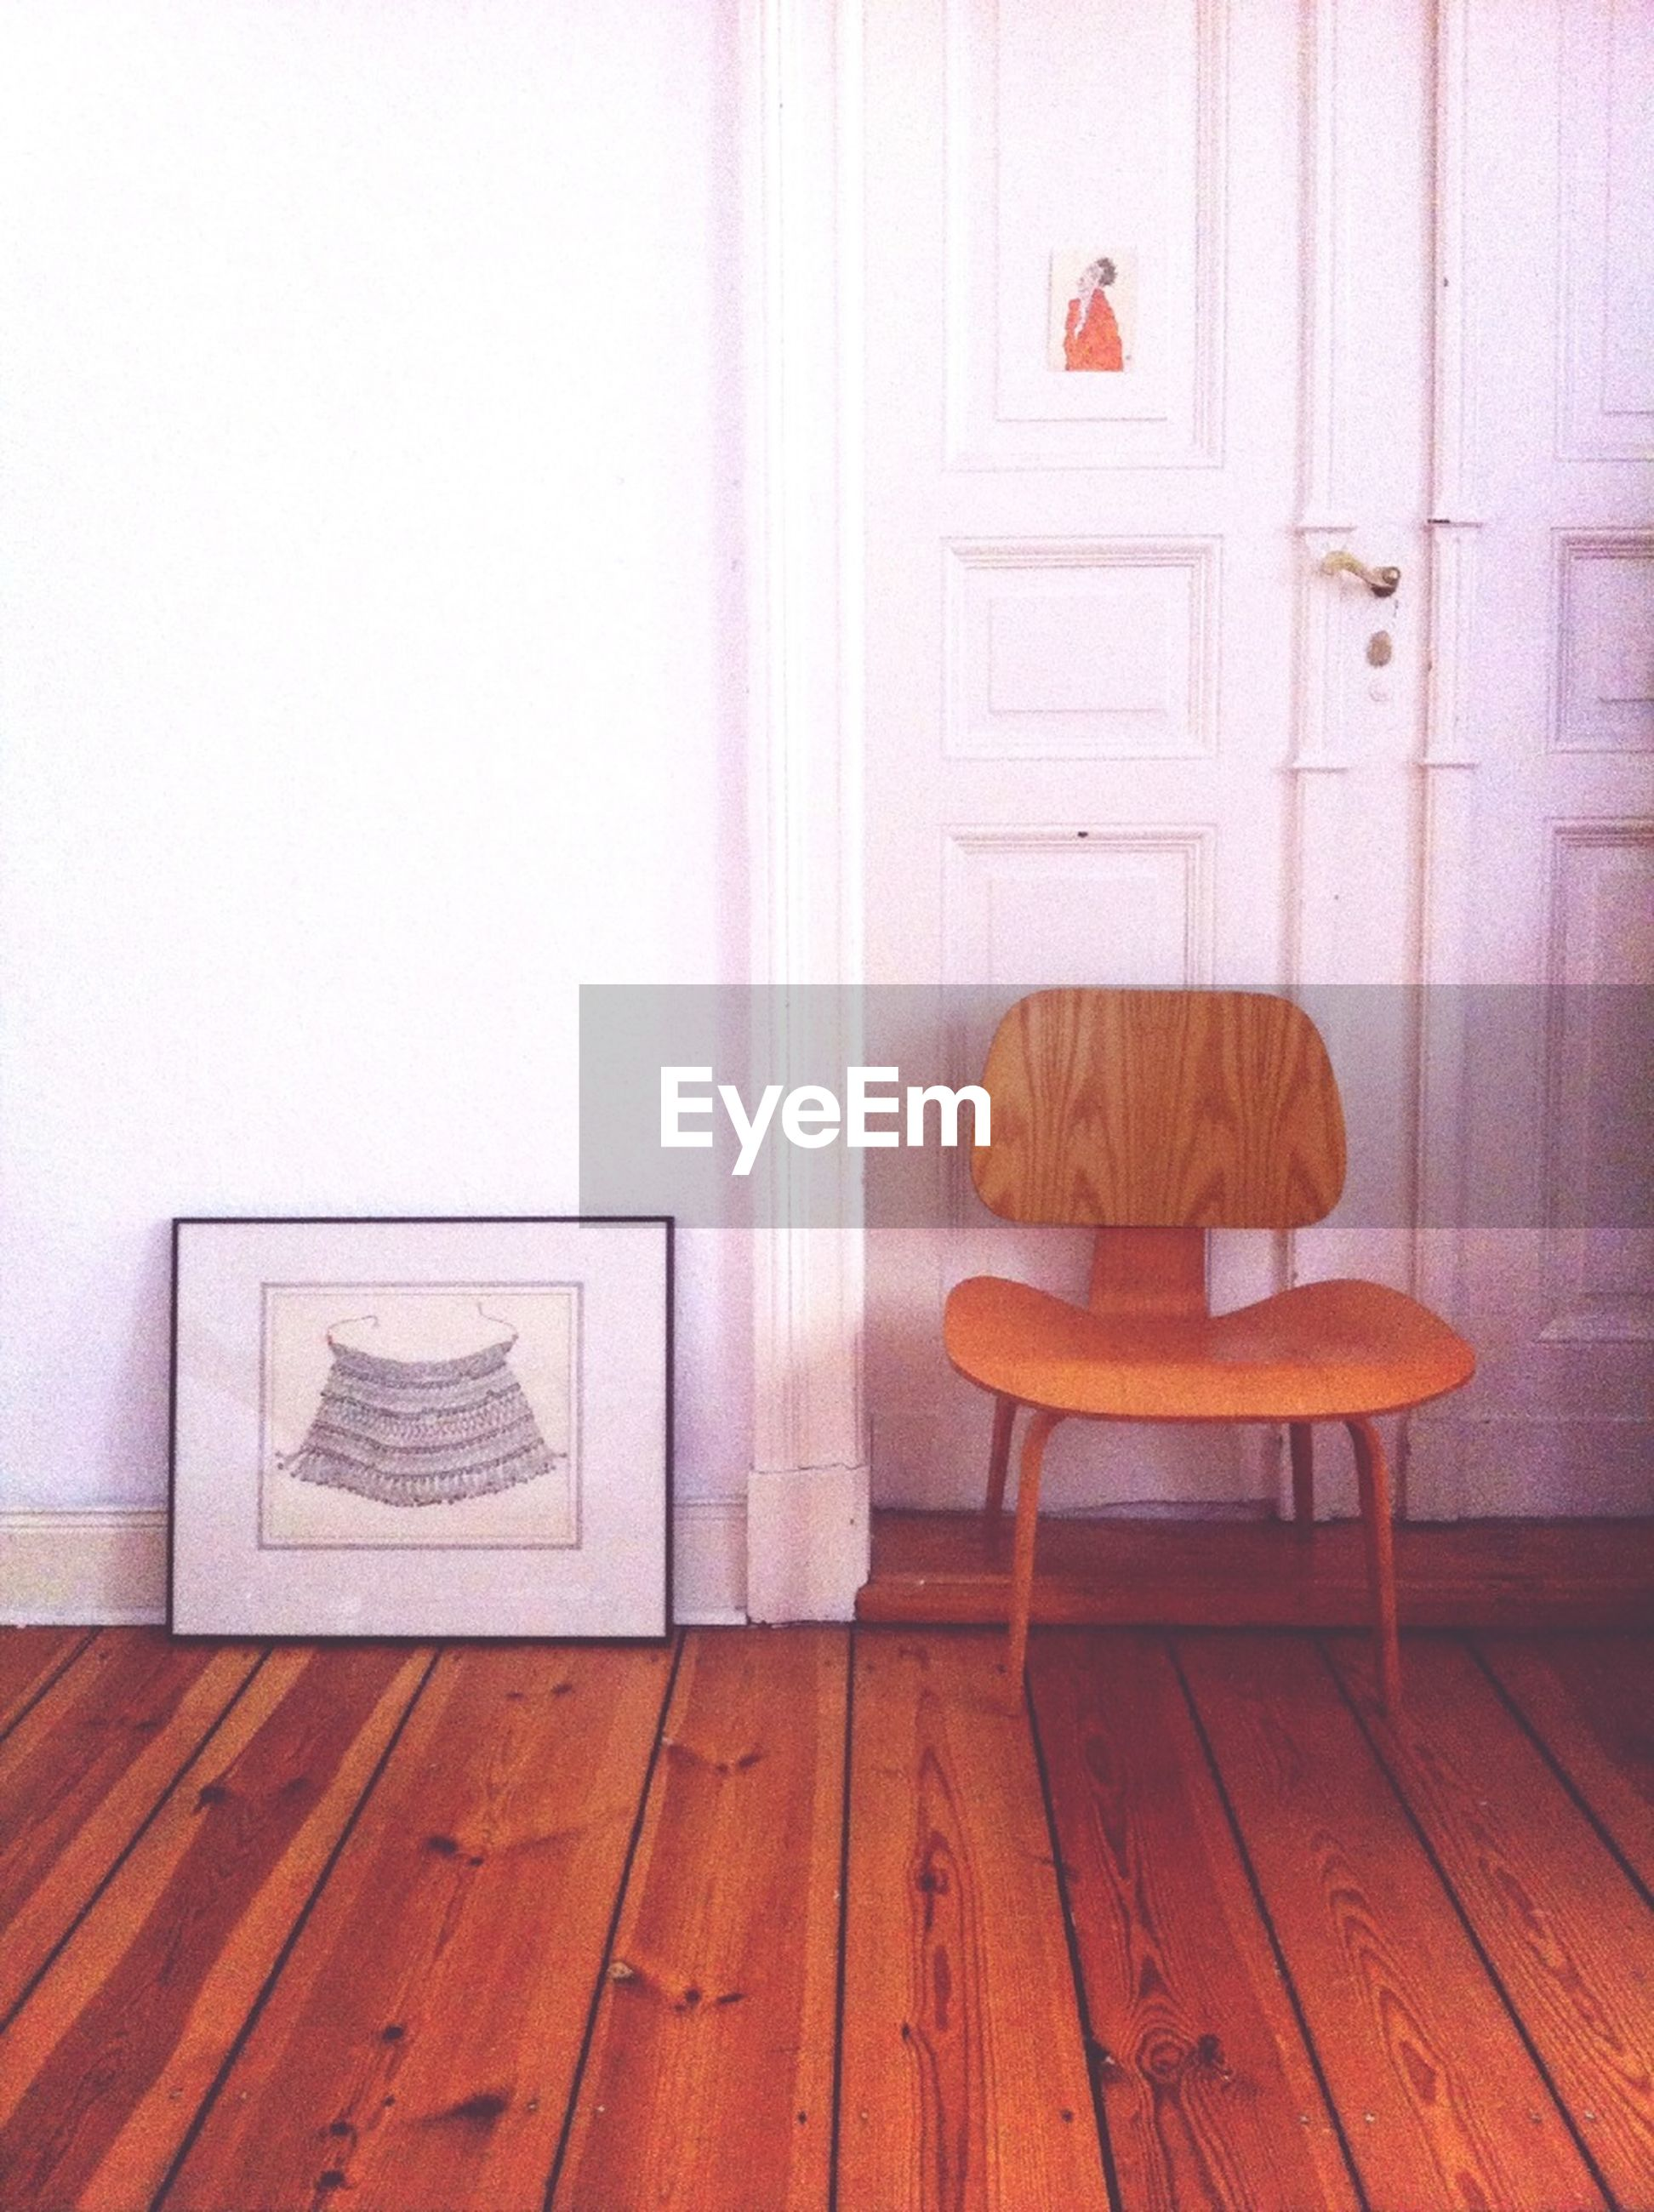 indoors, table, wood - material, still life, home interior, chair, wall - building feature, wooden, absence, empty, hardwood floor, furniture, domestic room, wall, wood, no people, door, red, brown, simplicity